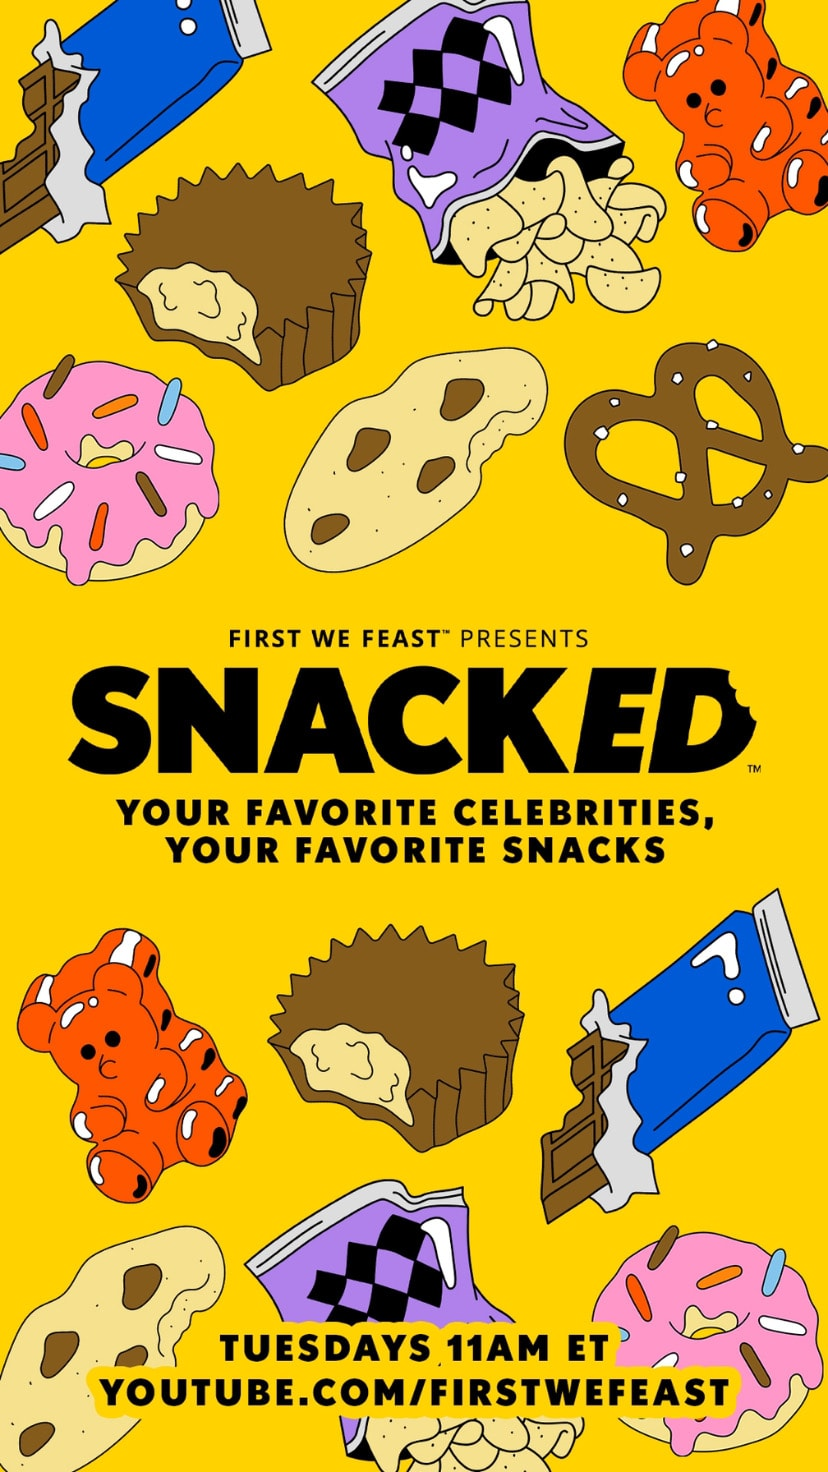 Snacked